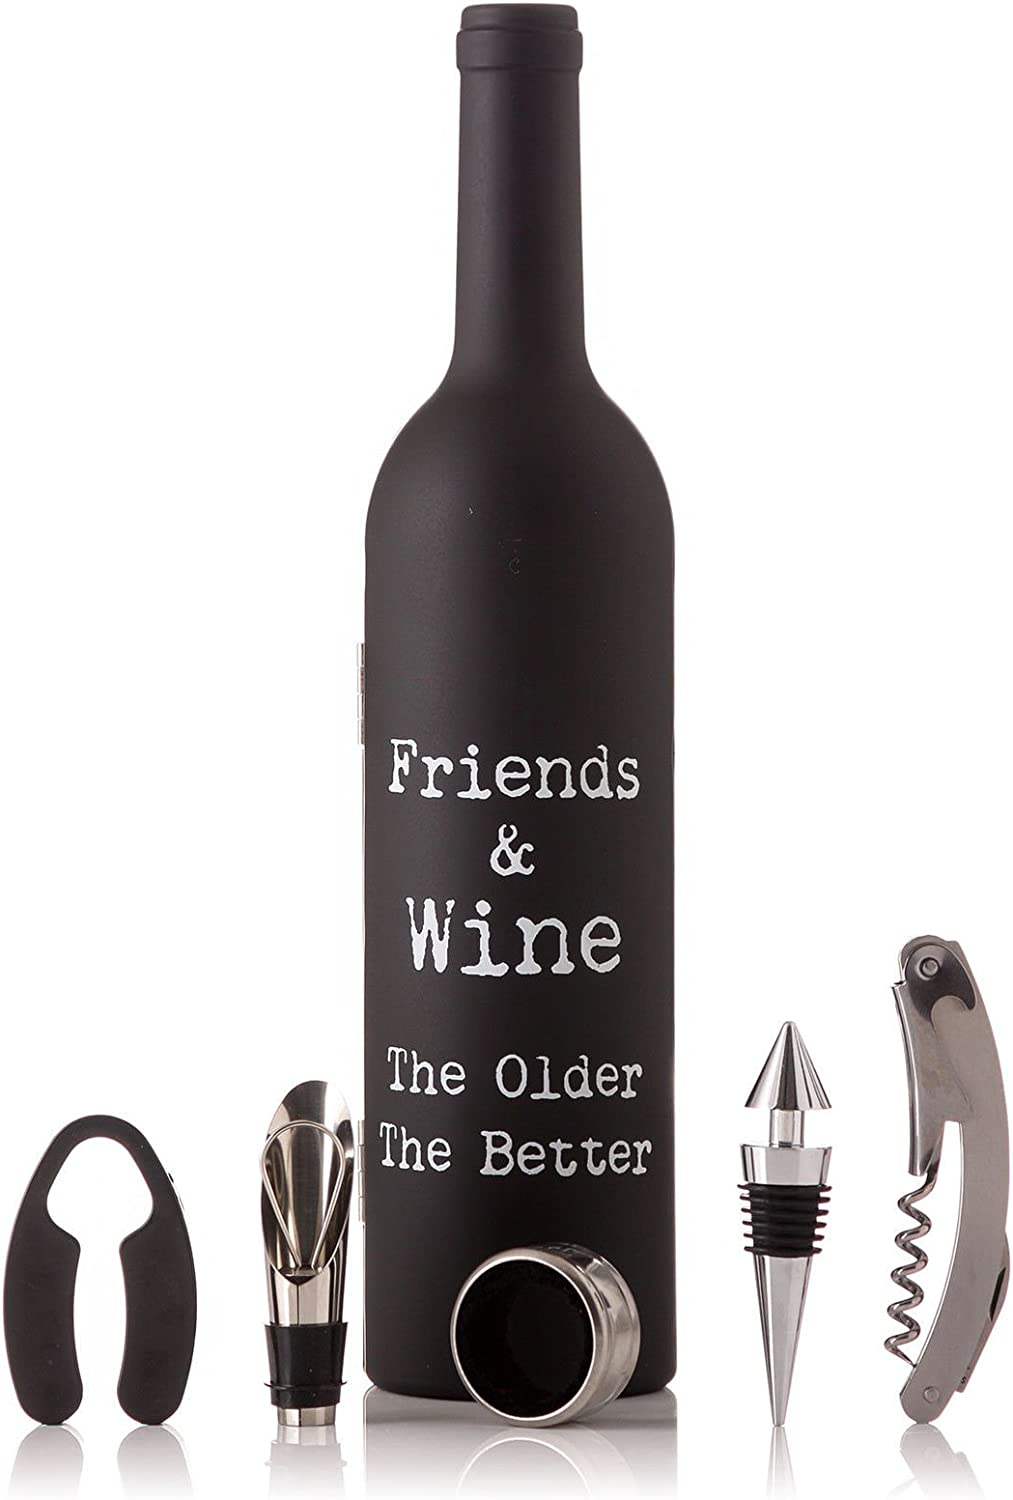 Bottle Shaped Wine Gift Set with Bottle Stopper, Corkscrew, aerator & cuff - Friends & Wine The older the better